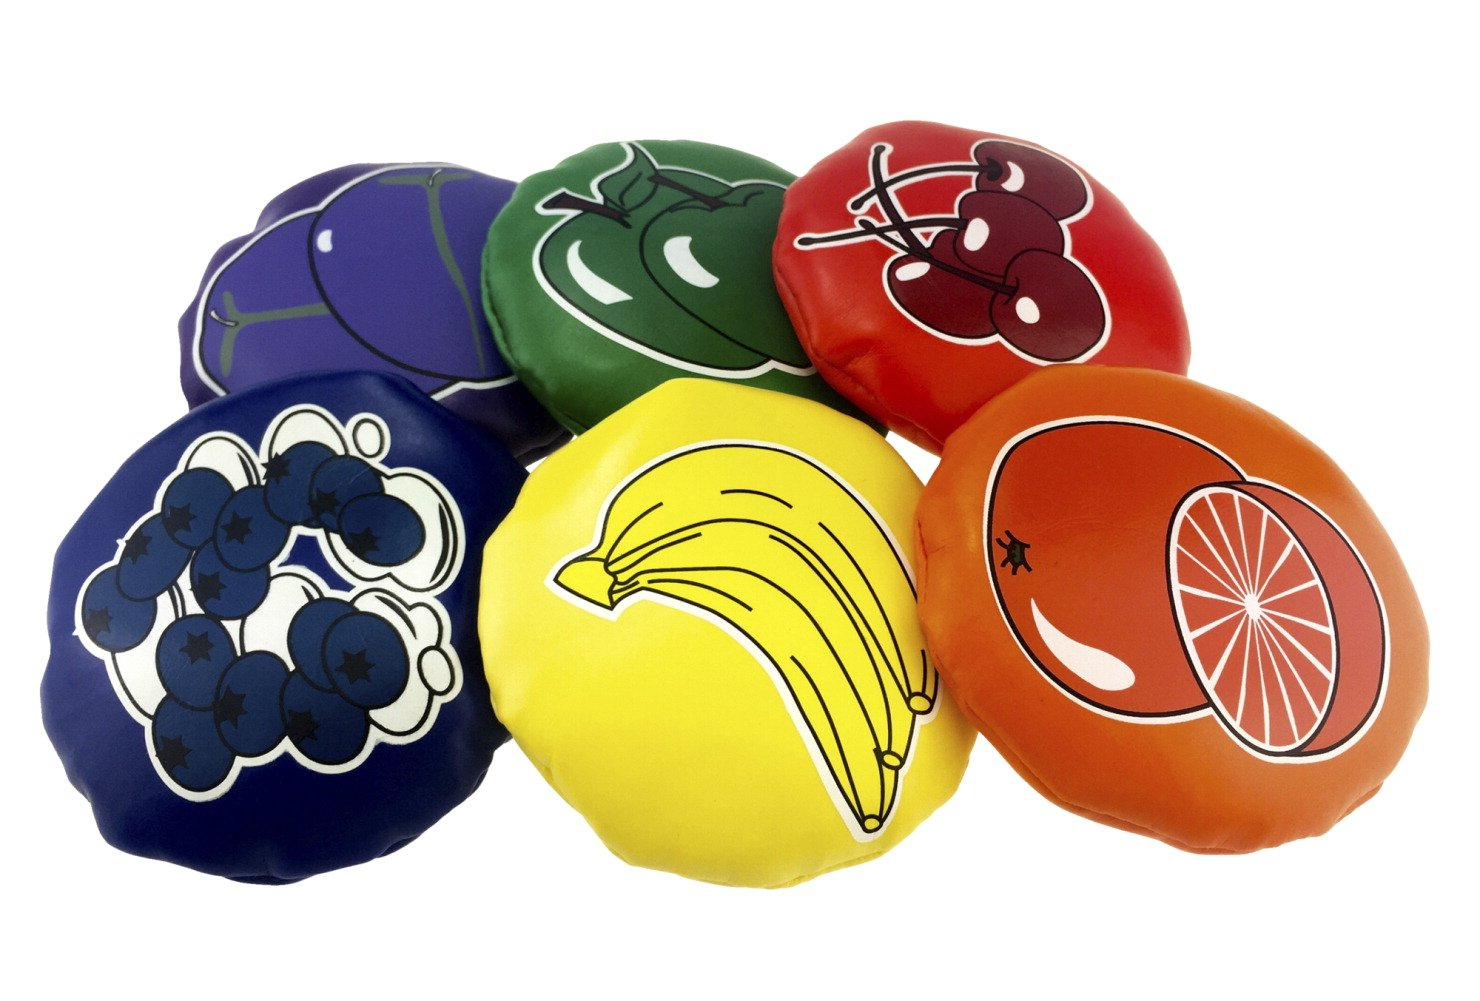 Speech Bin Fruit Salad Round Multilingual Beanbags - 3 inches - Set of 6